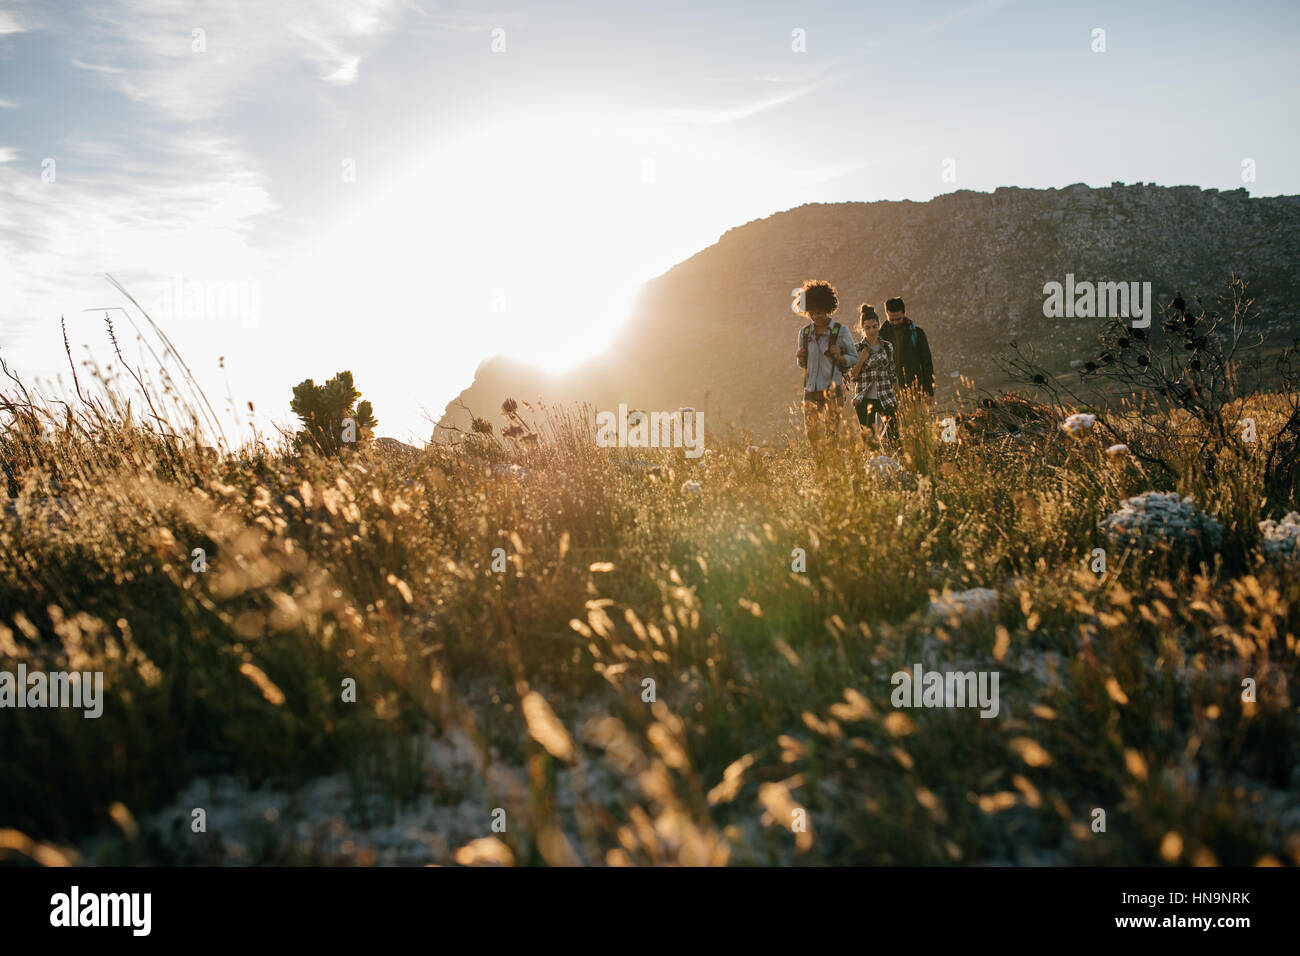 Young people walking in countryside. Group of friends are hiking in nature on a sunny day. - Stock Image